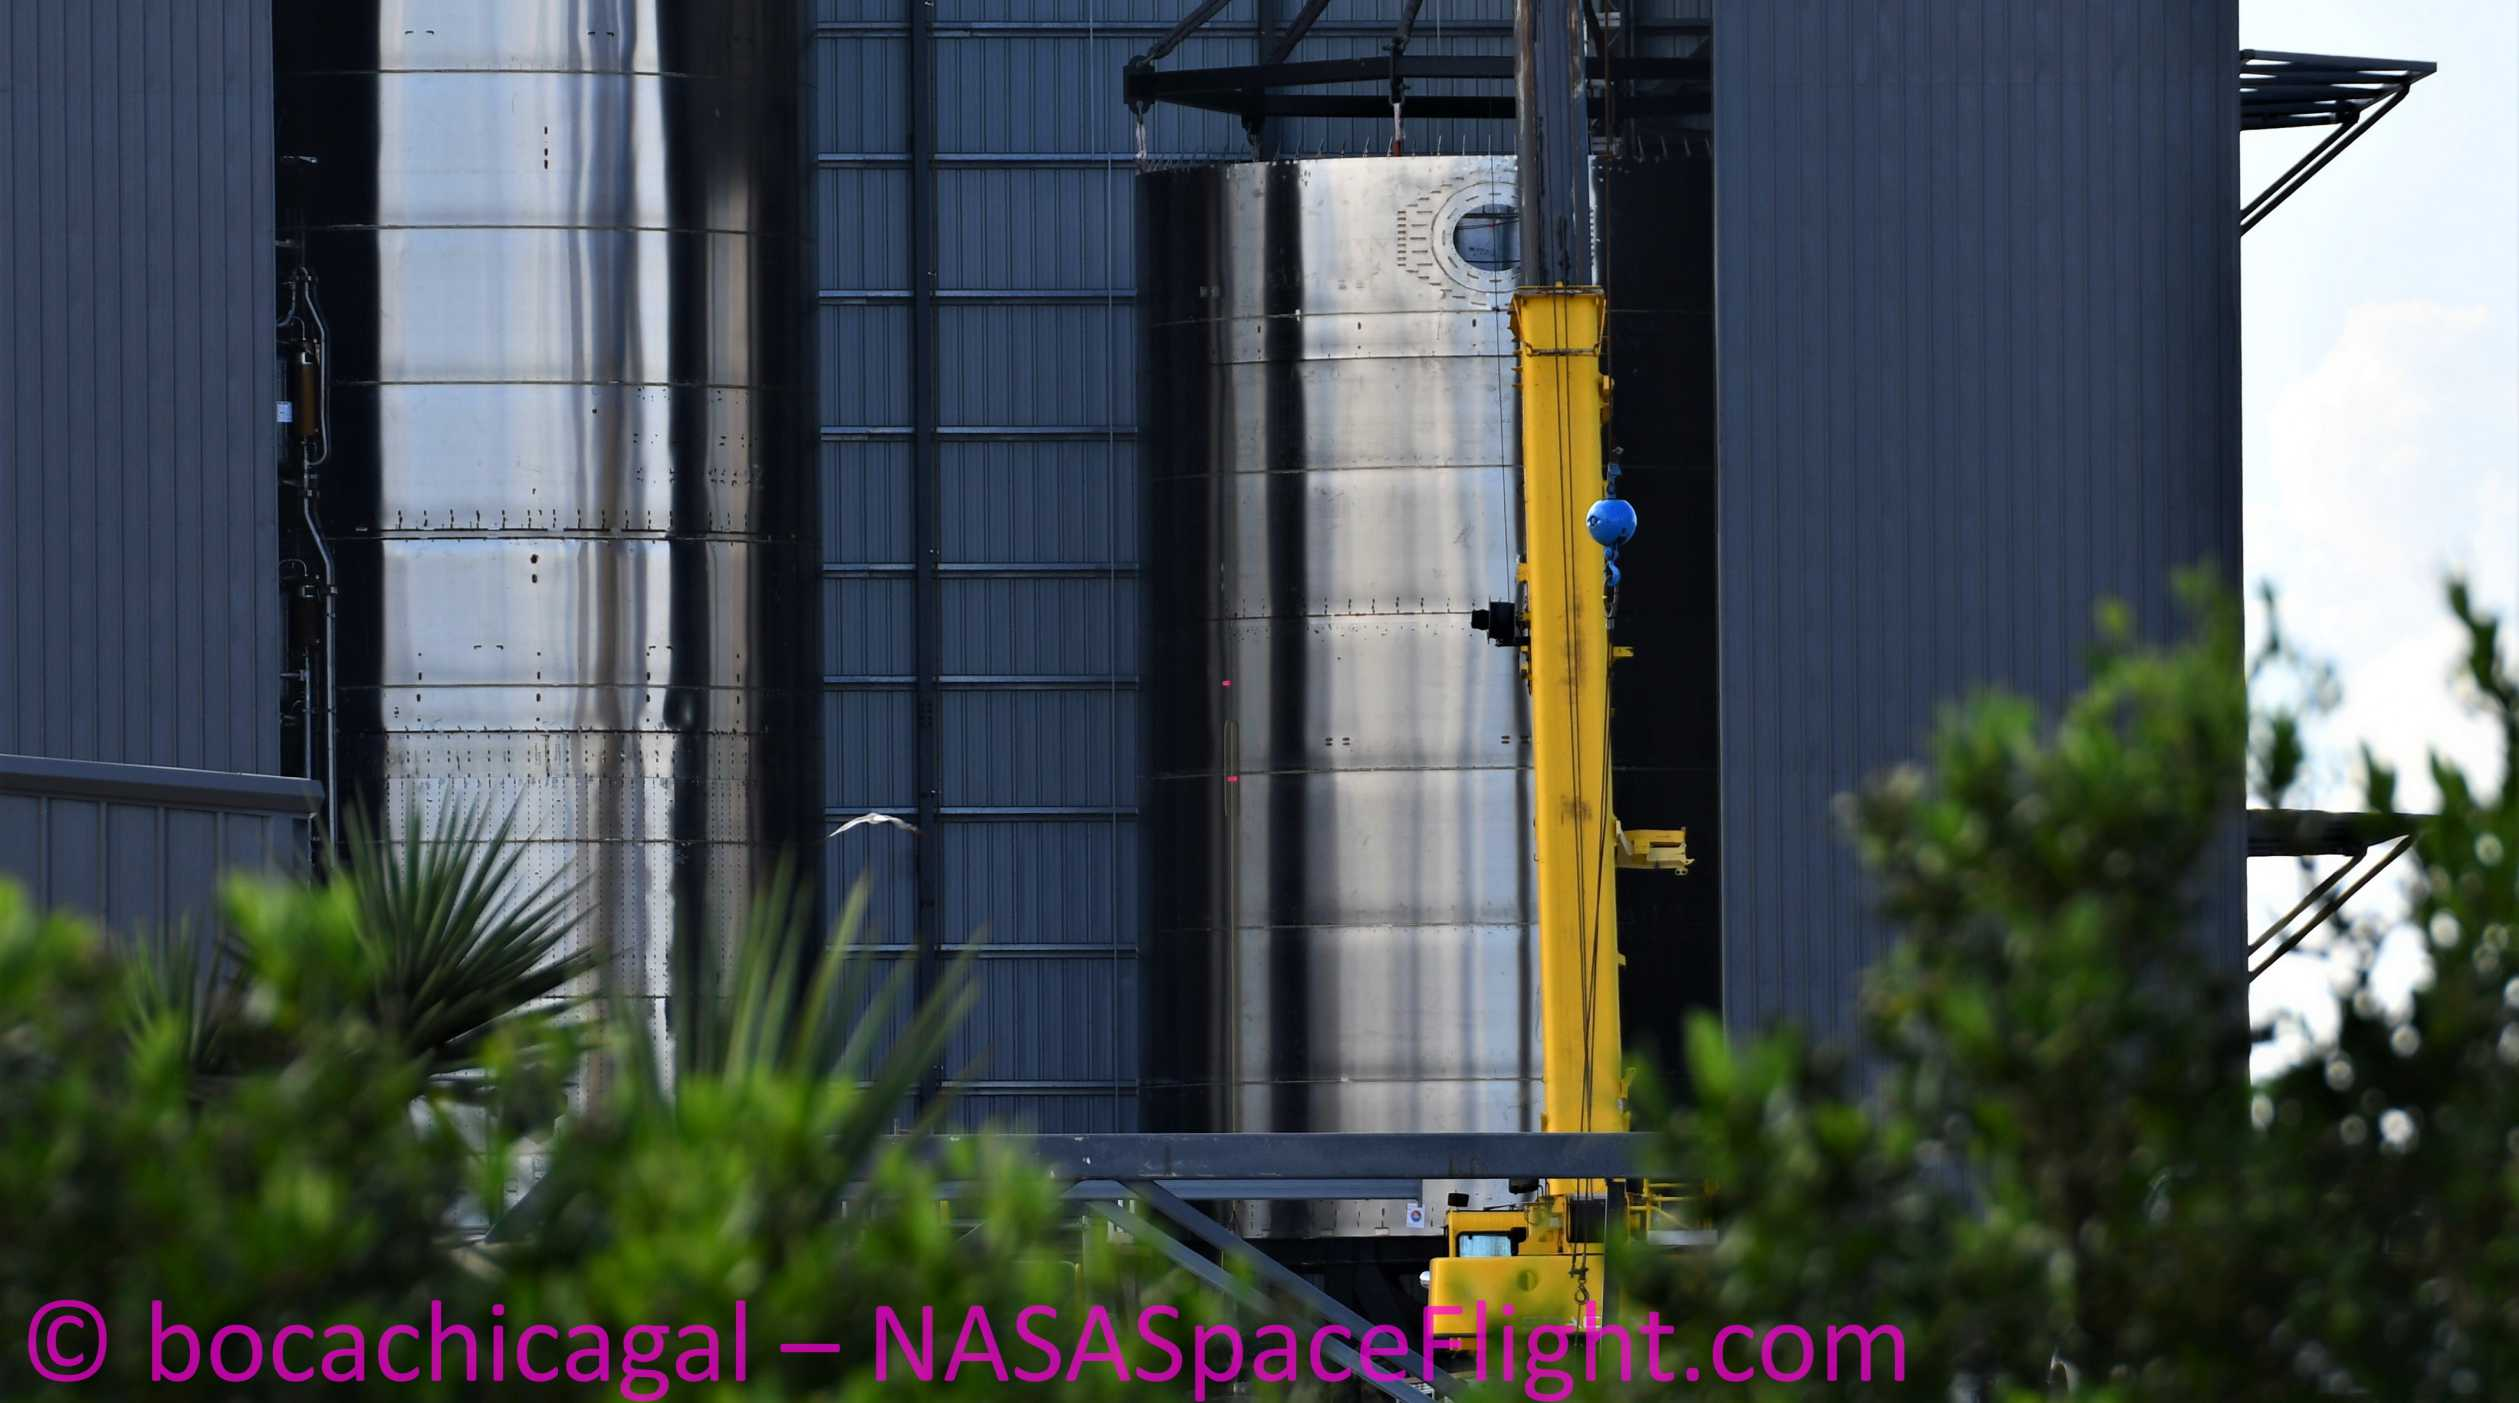 Starship Boca Chica 080520 (NASASpaceflight – bocachicagal) SN8 stacking 1 crop (c)